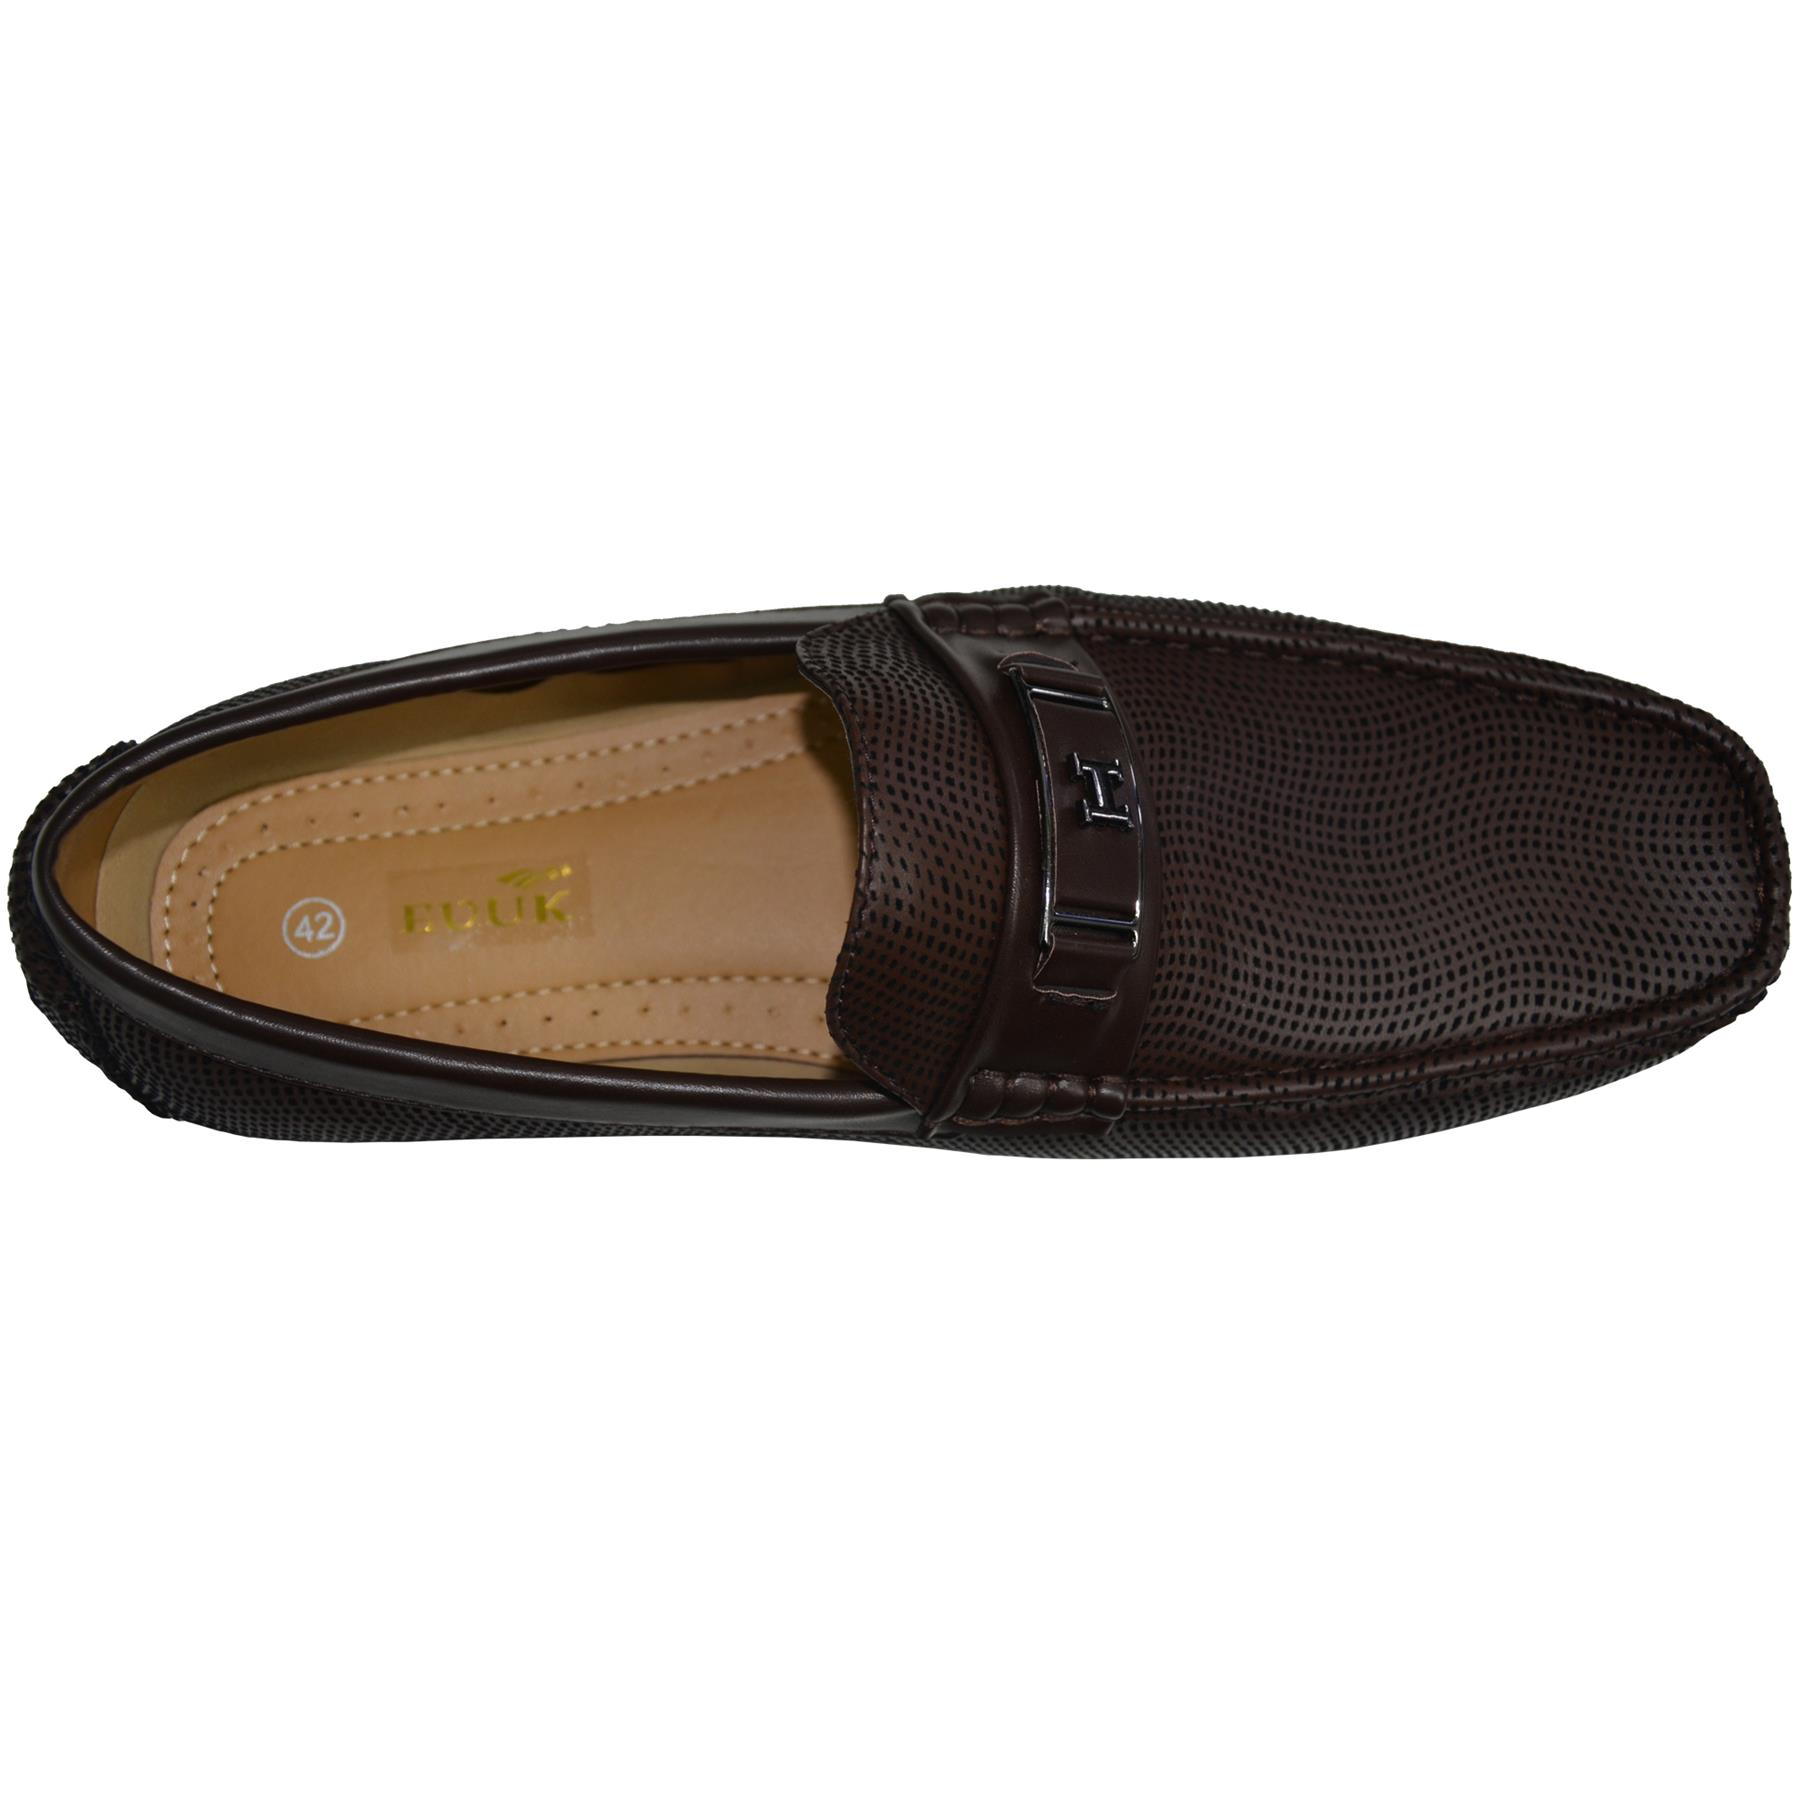 Mens-Slip-Ons-Shoes-Boat-Deck-Driving-Smart-Buckle-Moccasins-Suede-Look-Loafers thumbnail 18